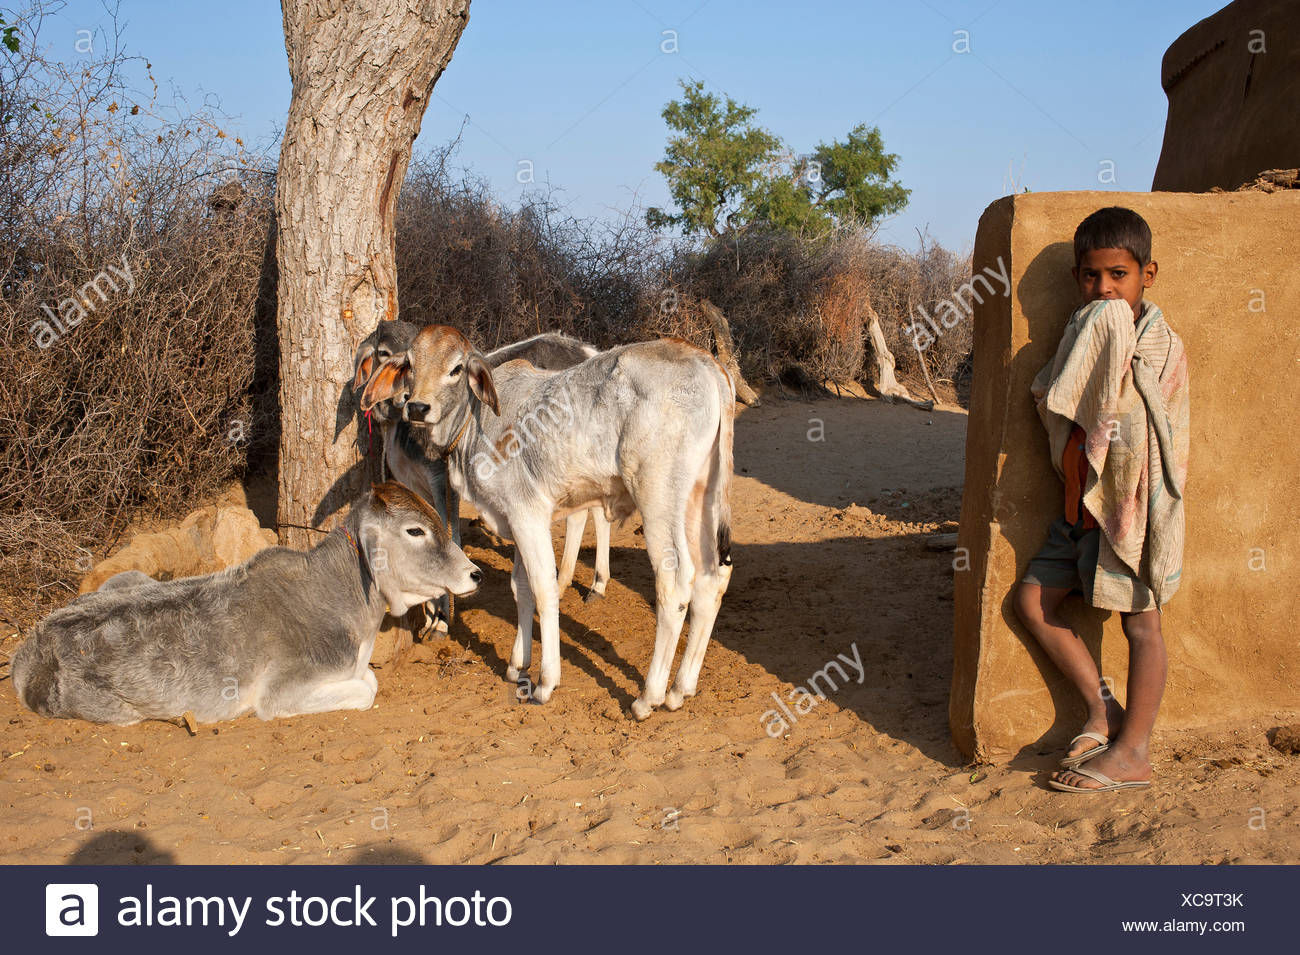 Curious little boy standing in front of a wall, the family's cows are sitting under a tree, Thar Desert, Rajasthan, India, Asia - Stock Image